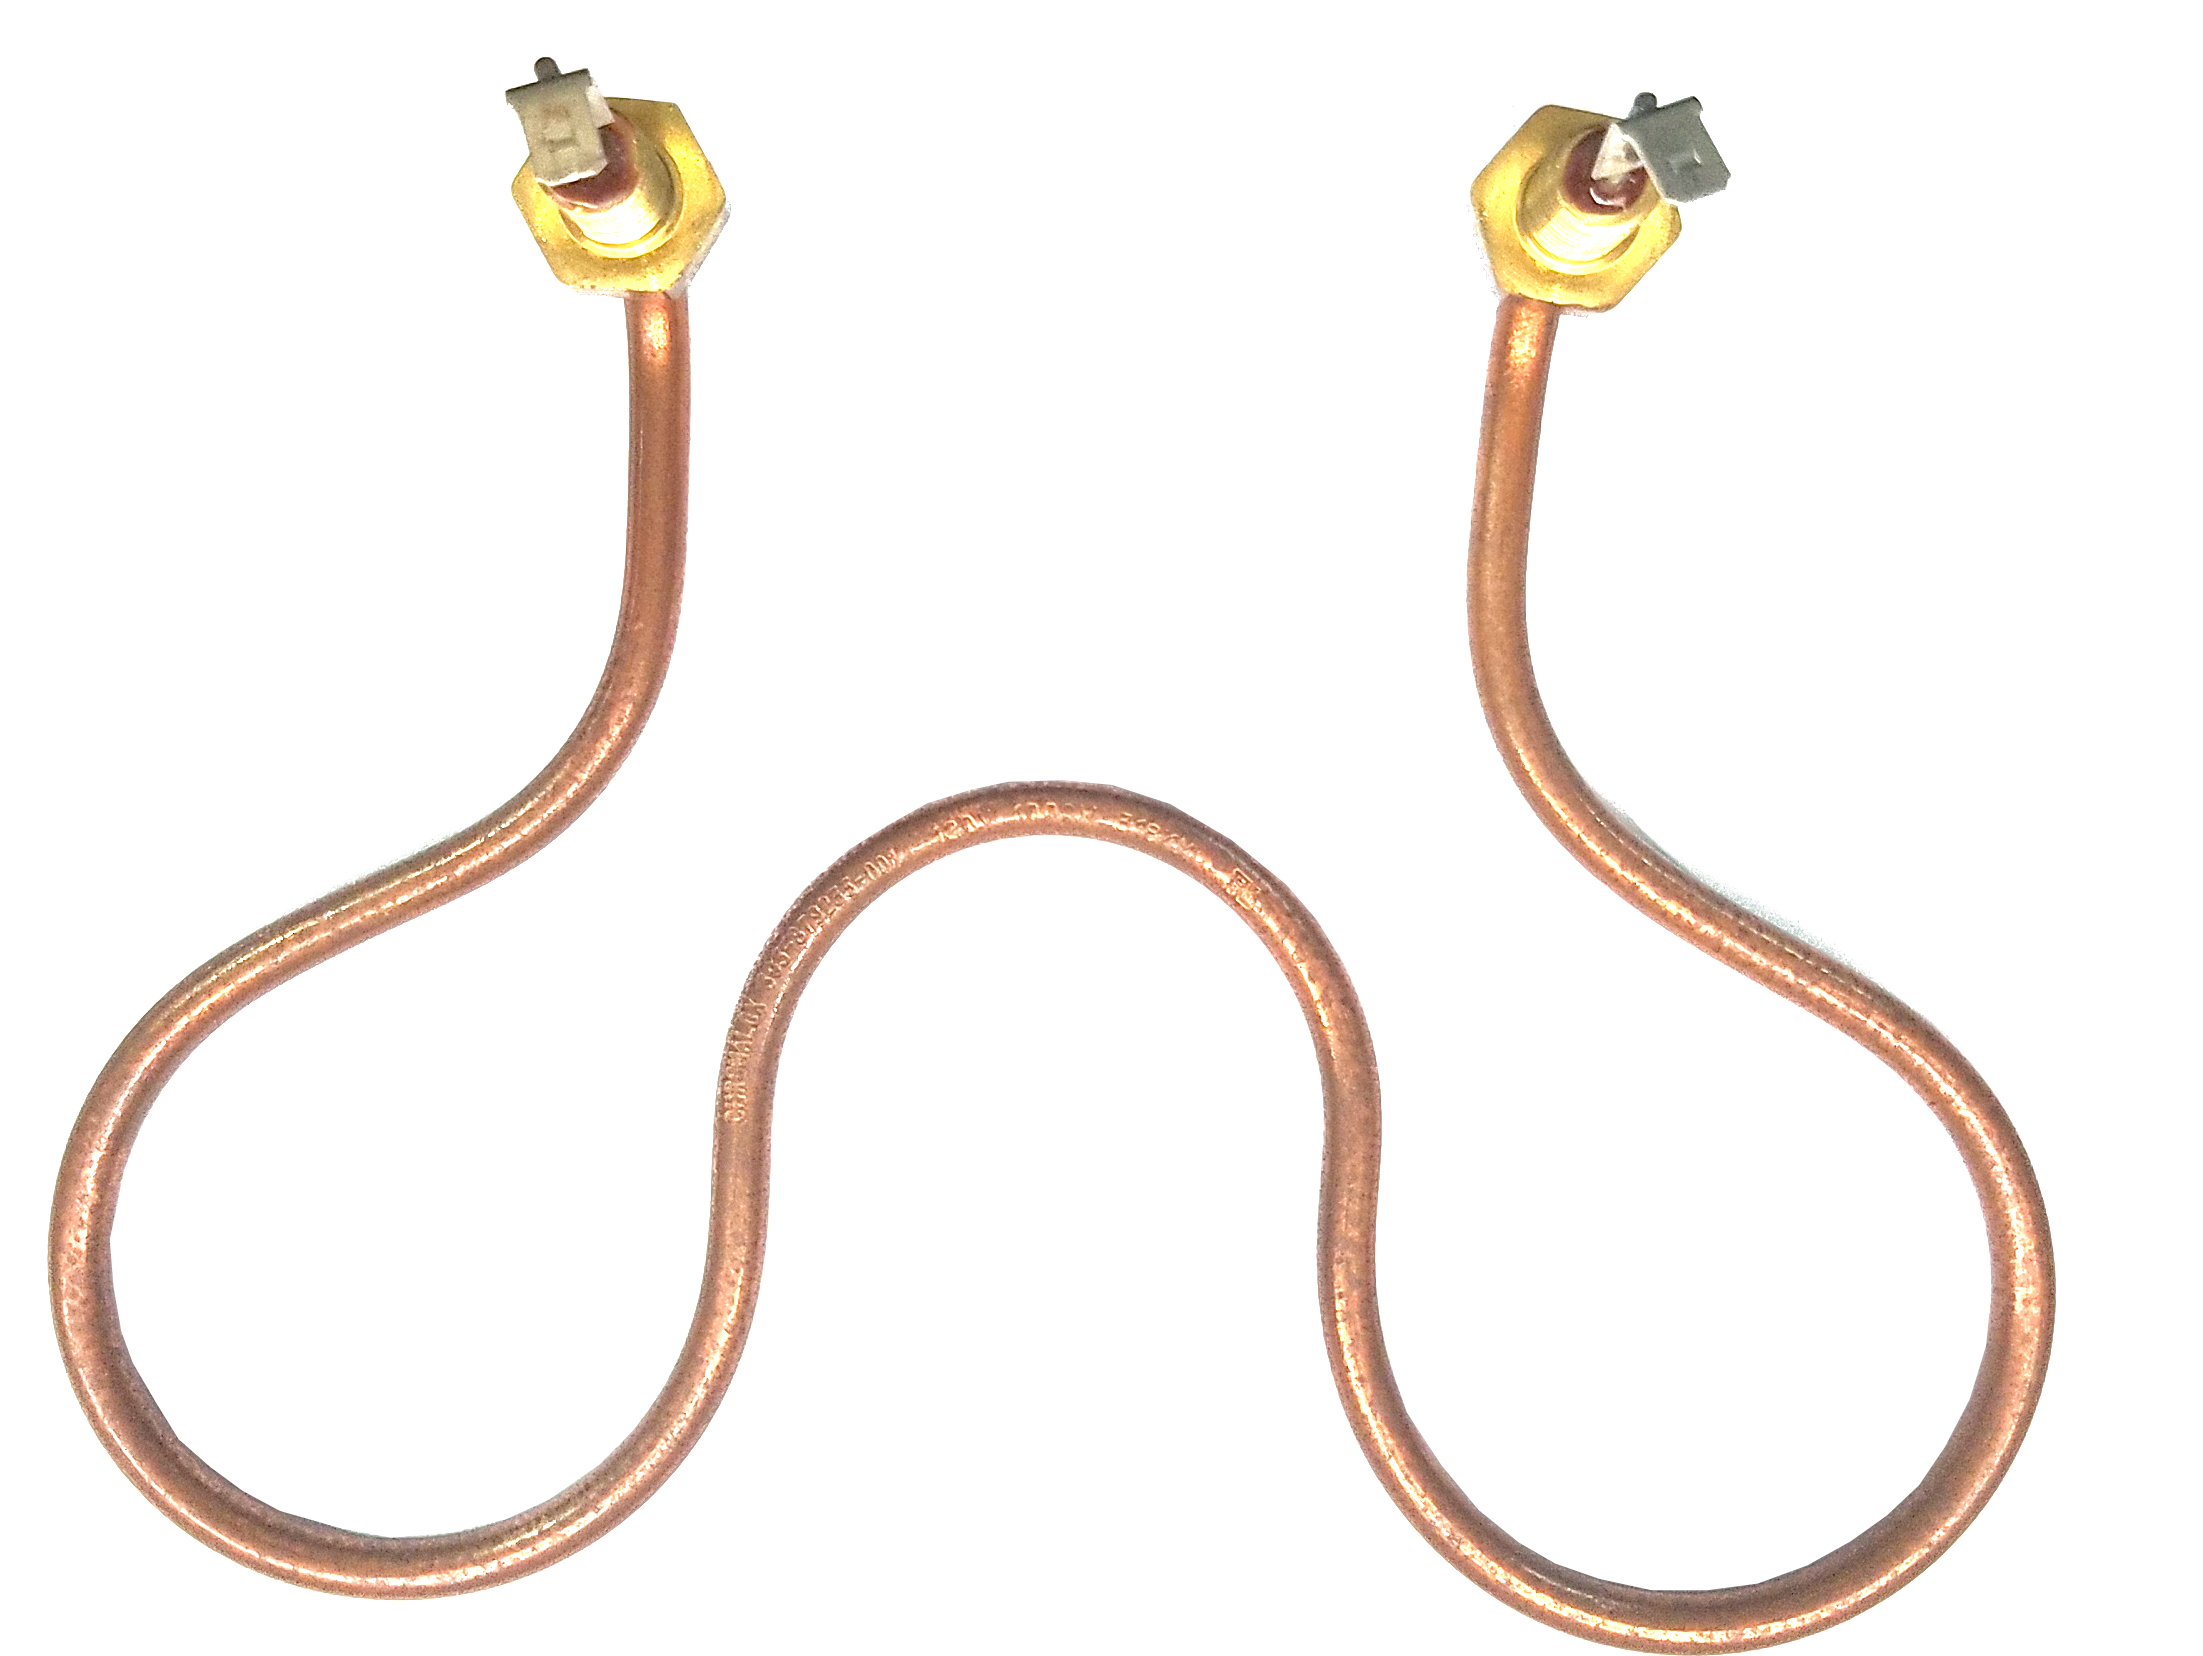 10631 chattanooga hydrocollator heating element chattanooga m 4 hydrocollator wiring diagram at soozxer.org